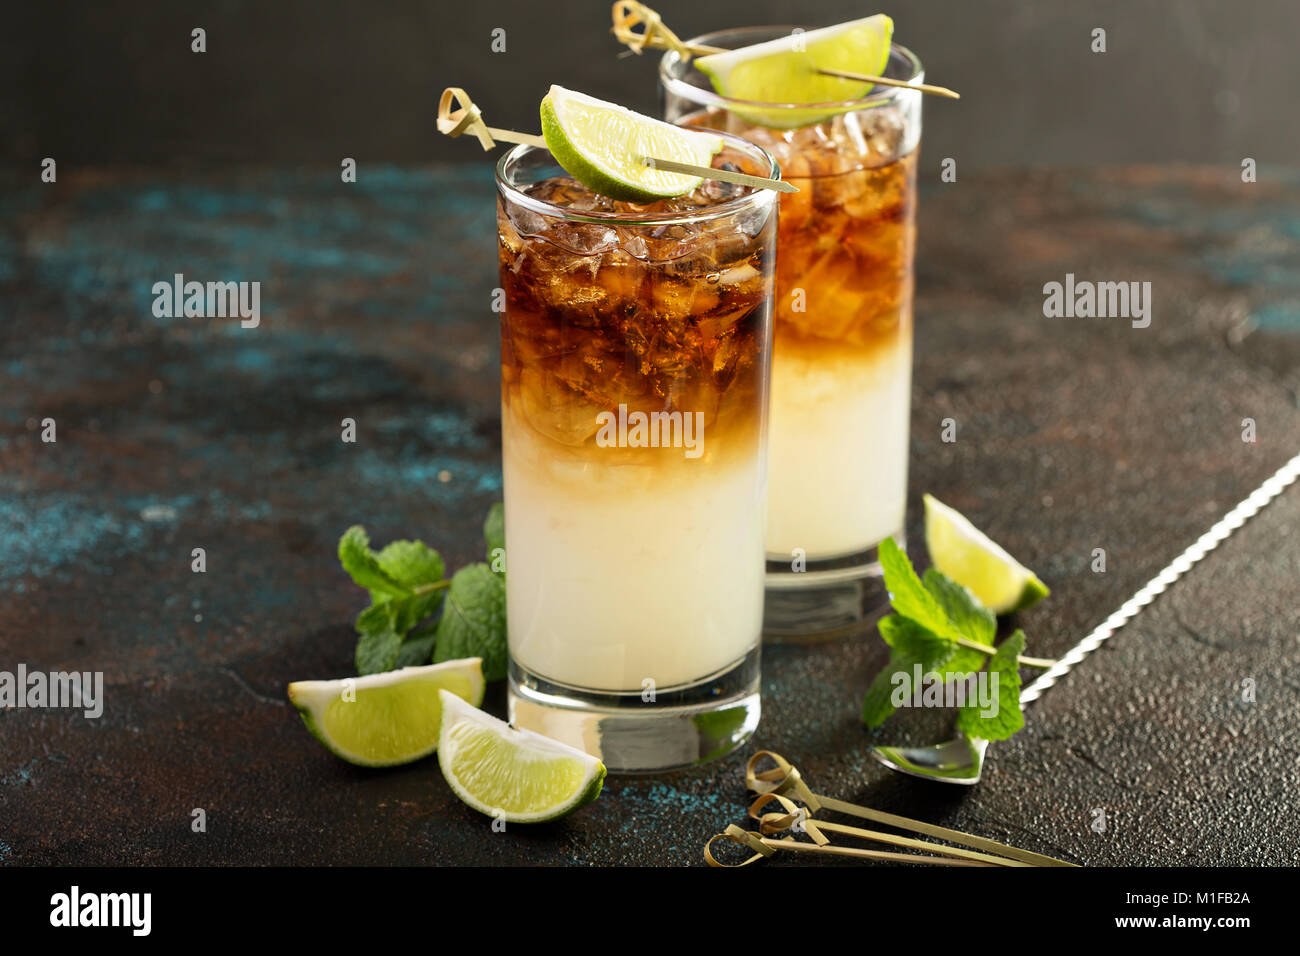 Dark and stormy cocktail with ginger ale and rum - Stock Image